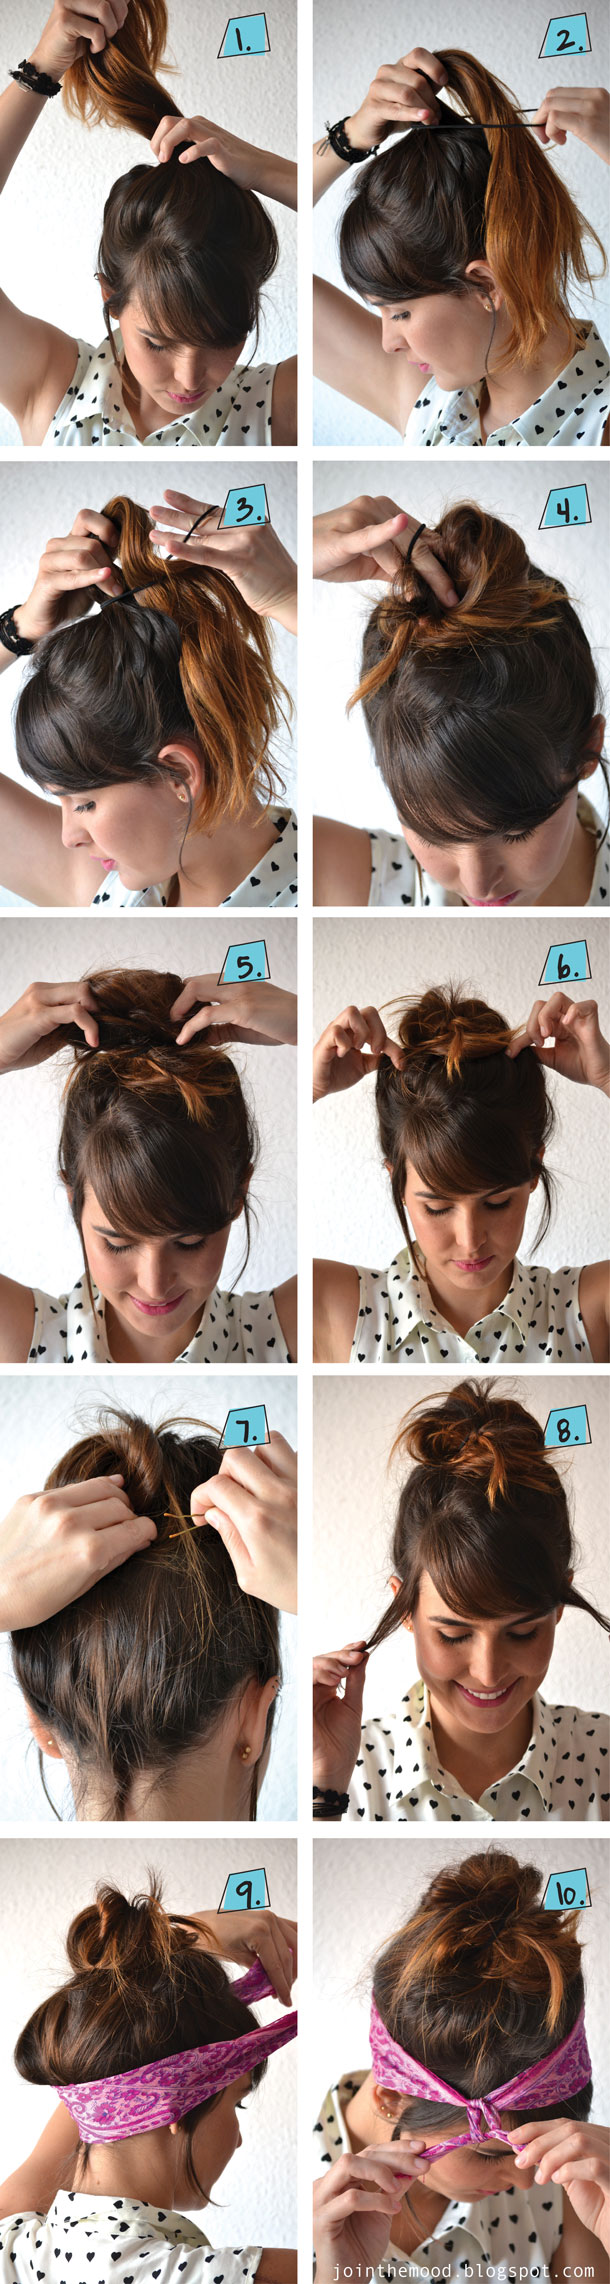 Hair tutorial with bandana